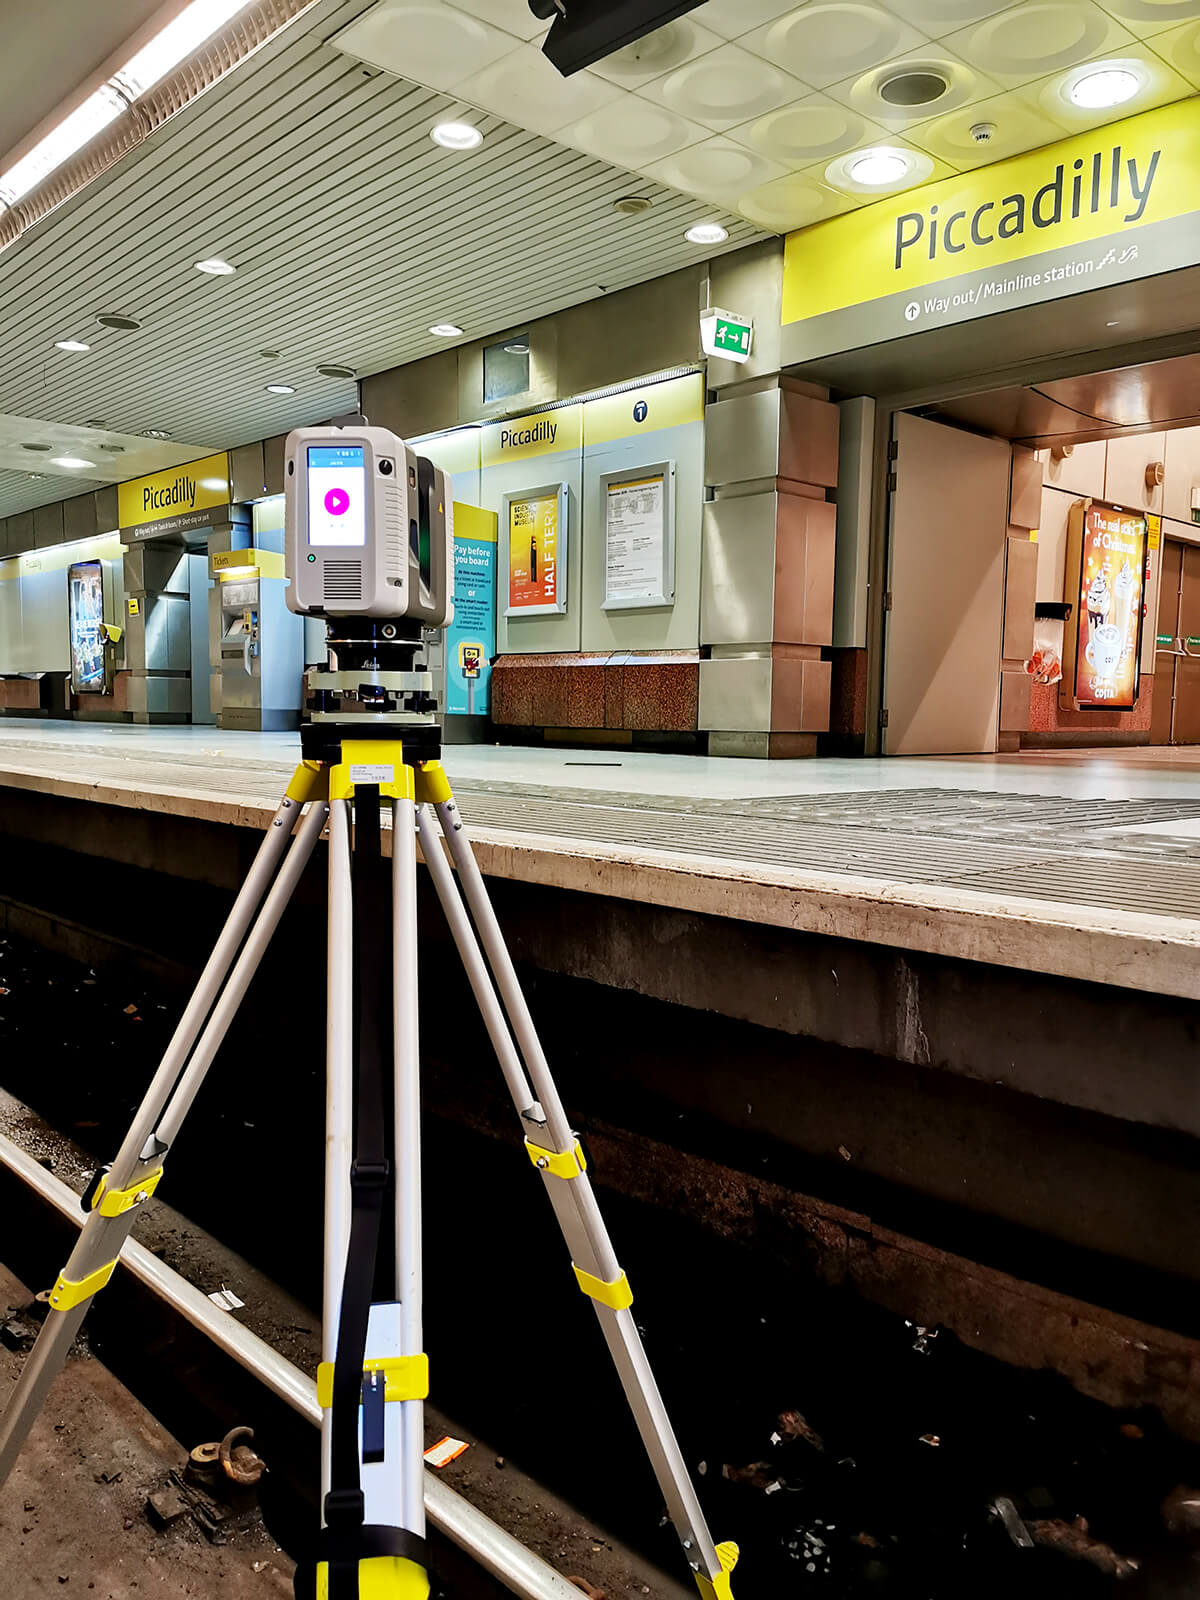 SCANTECH INTERNATIONAL Efficient Scanning of a Metro Station with the Leica RTC360 Laser Scanner